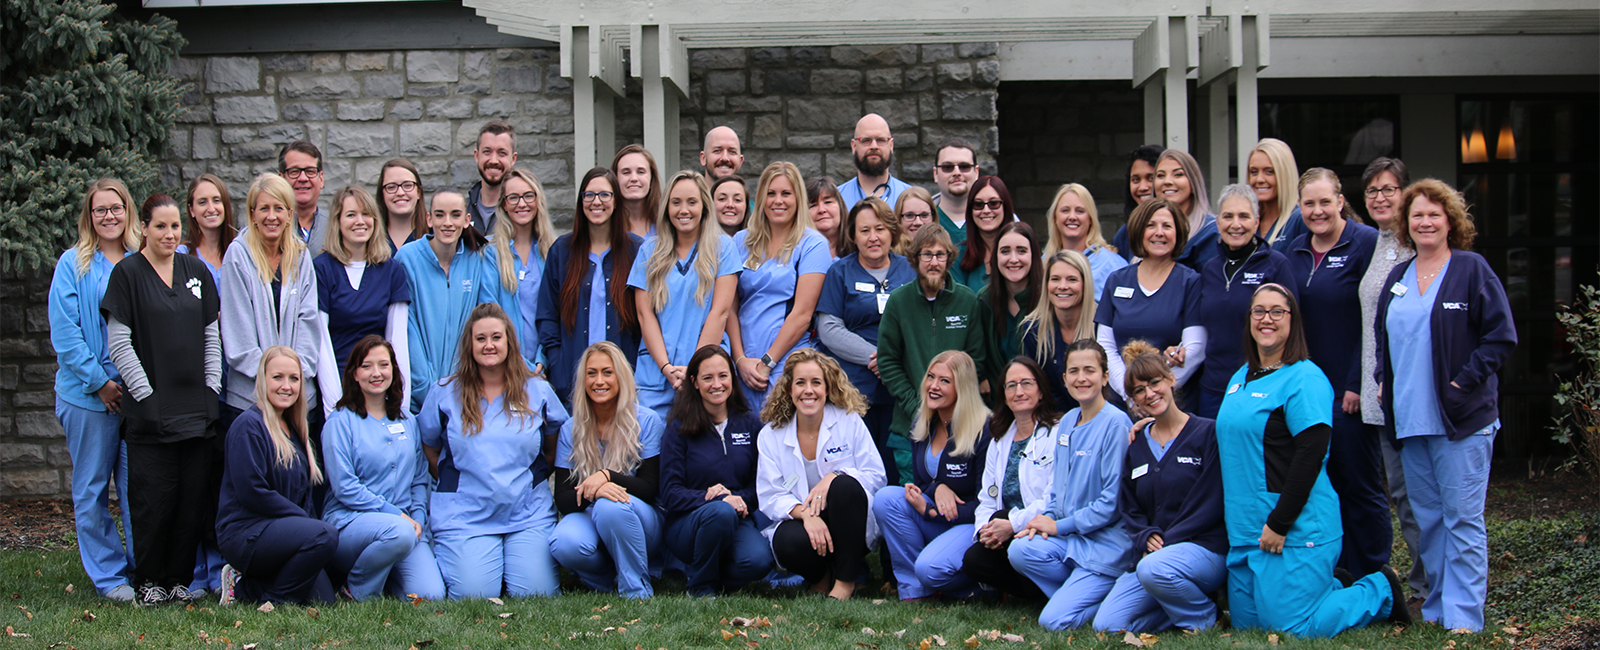 Team Picture of VCA Sawmill Animal Hospital 2019